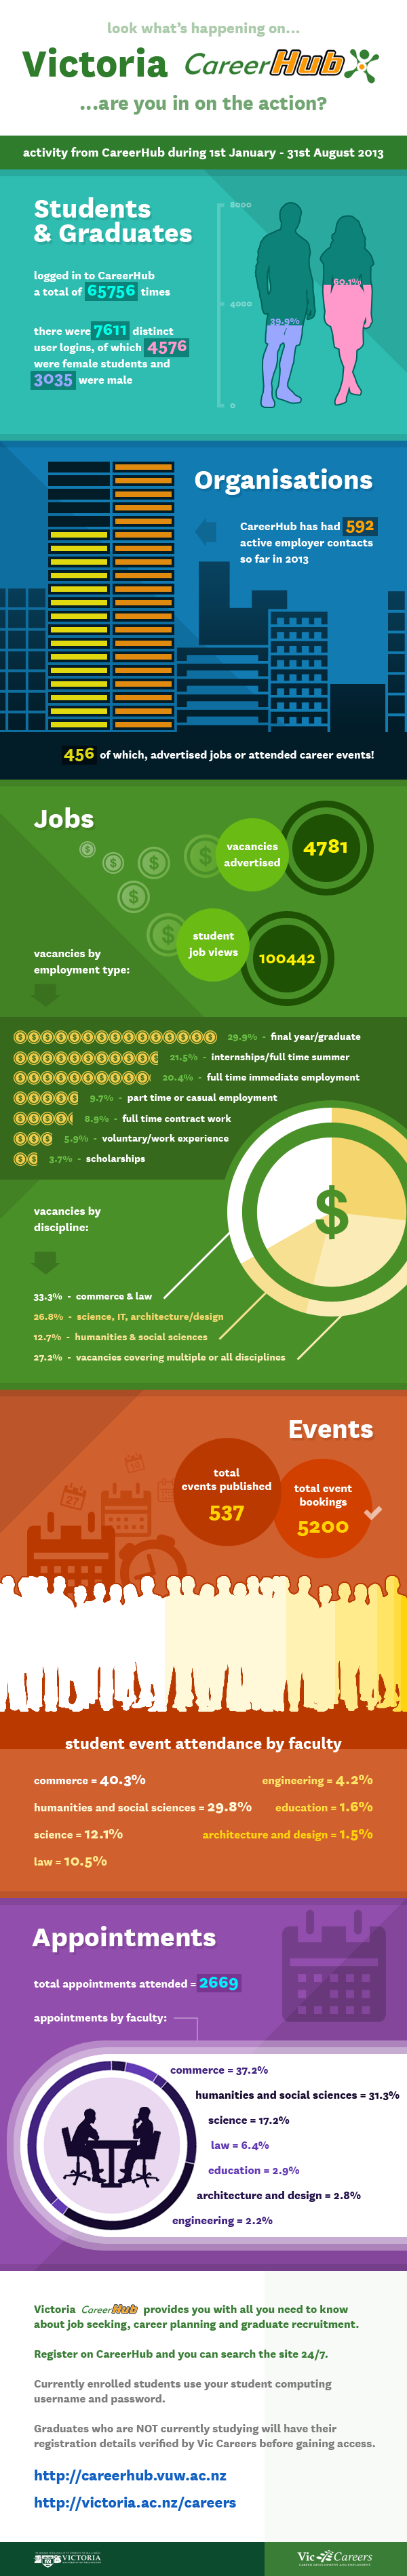 CareerHub activity infographic